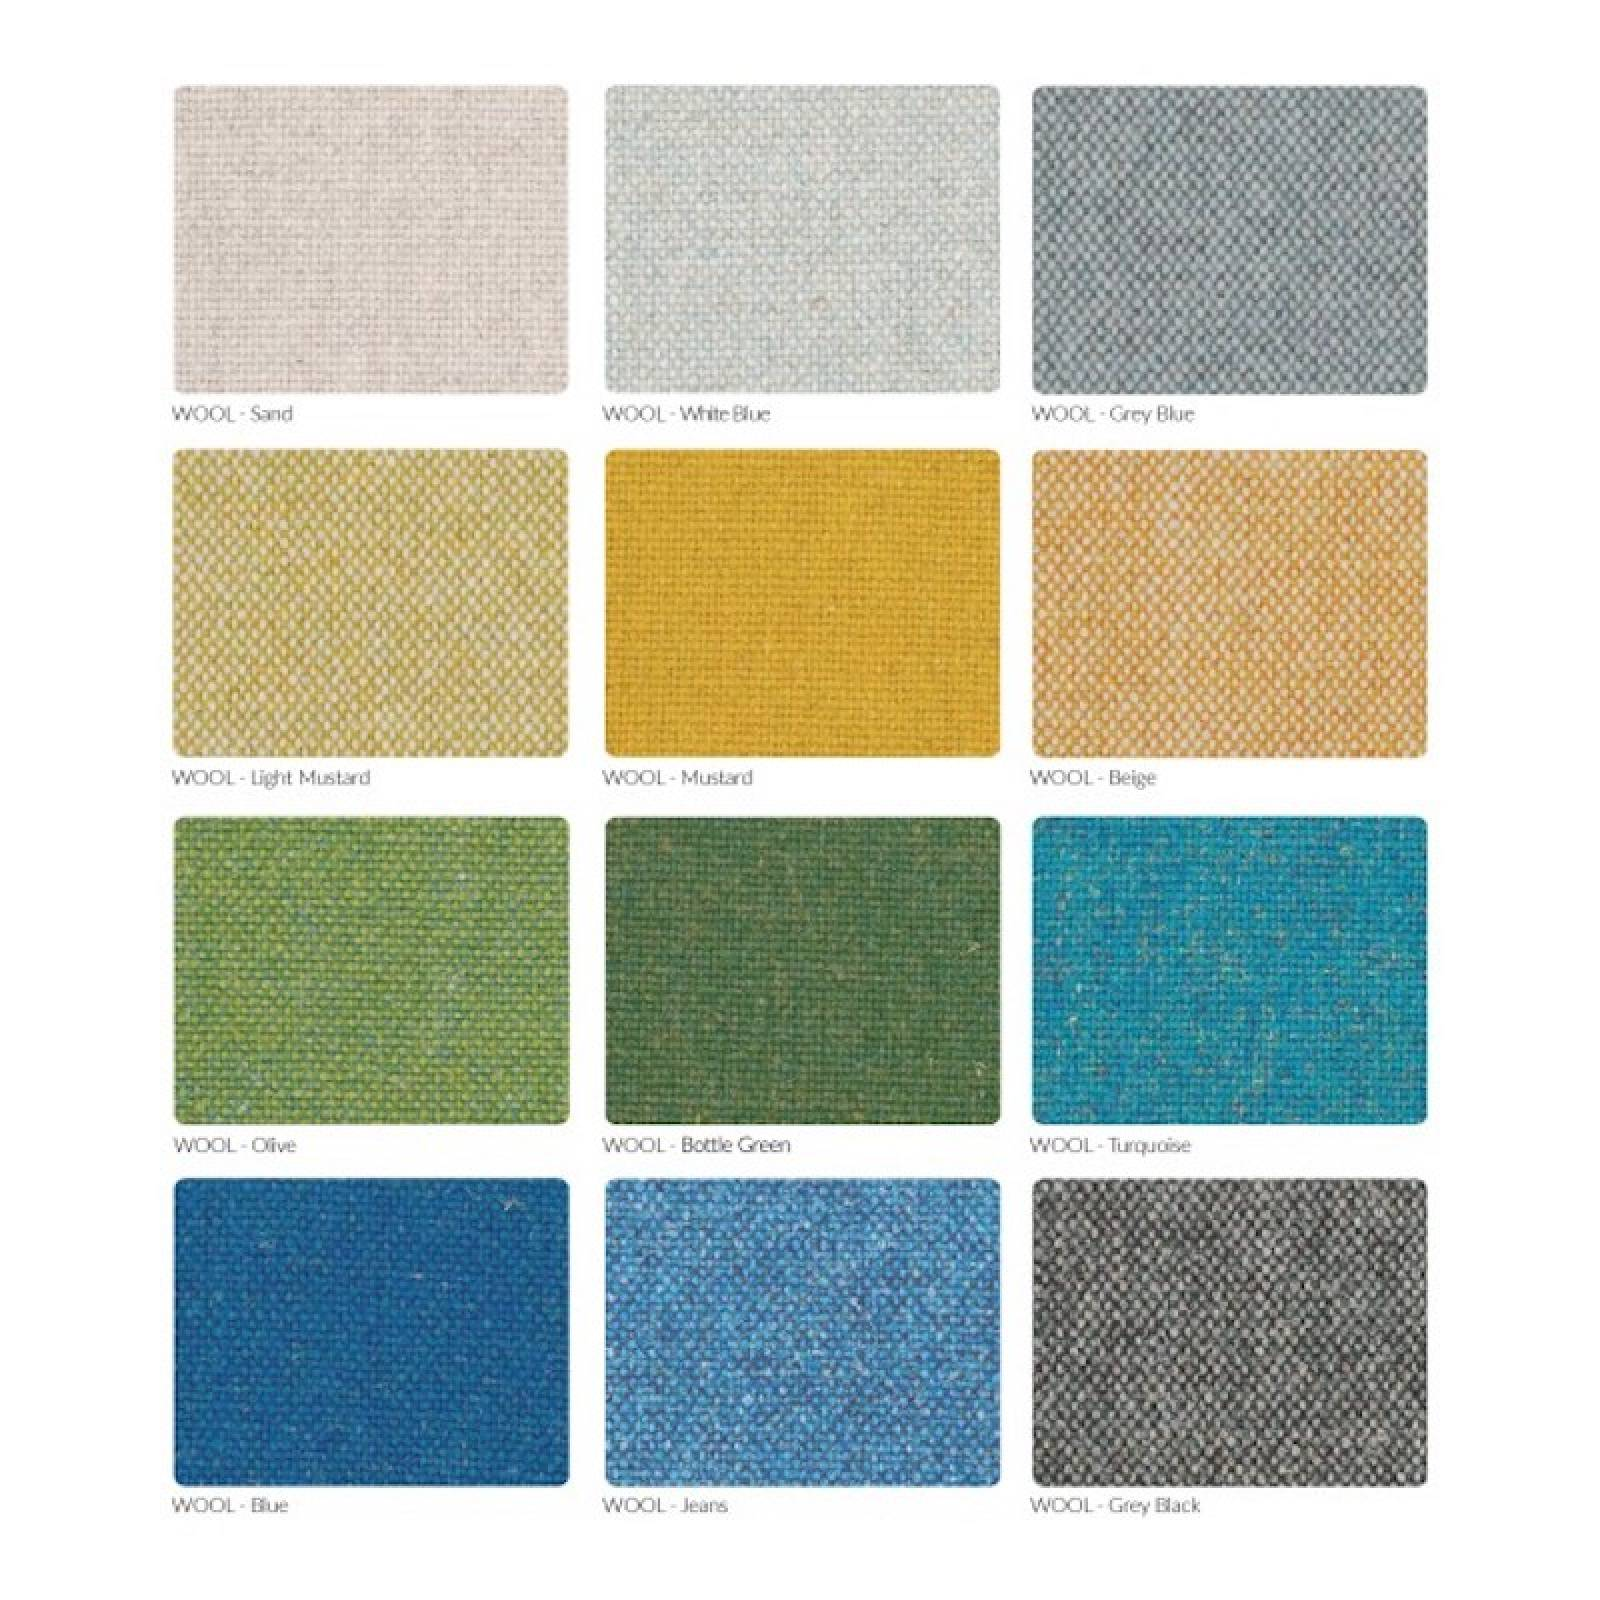 366 Plus Armchair - Wool Fabrics thumbnails